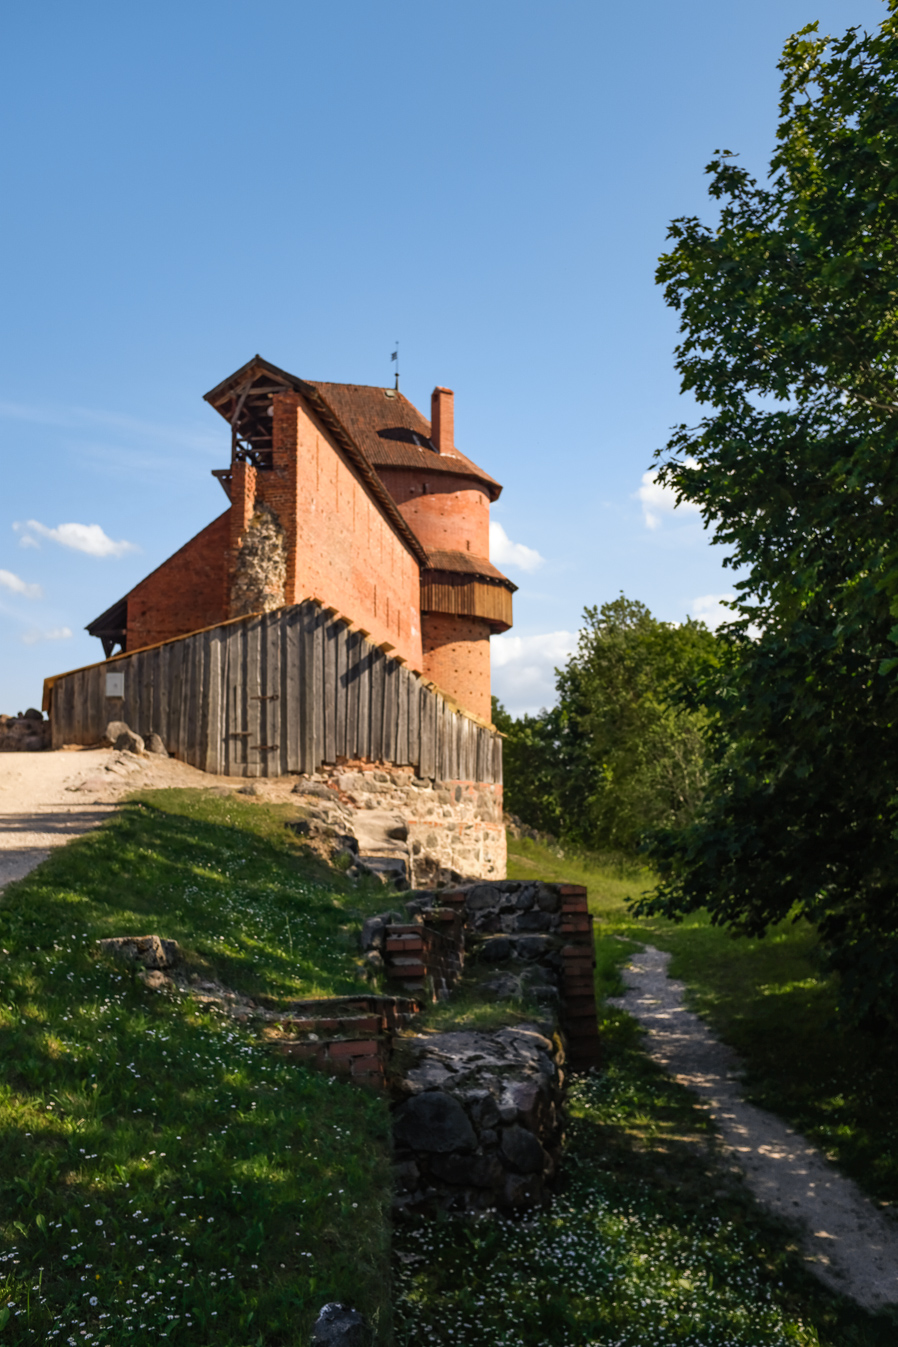 Side-view of castle constructed from red brick